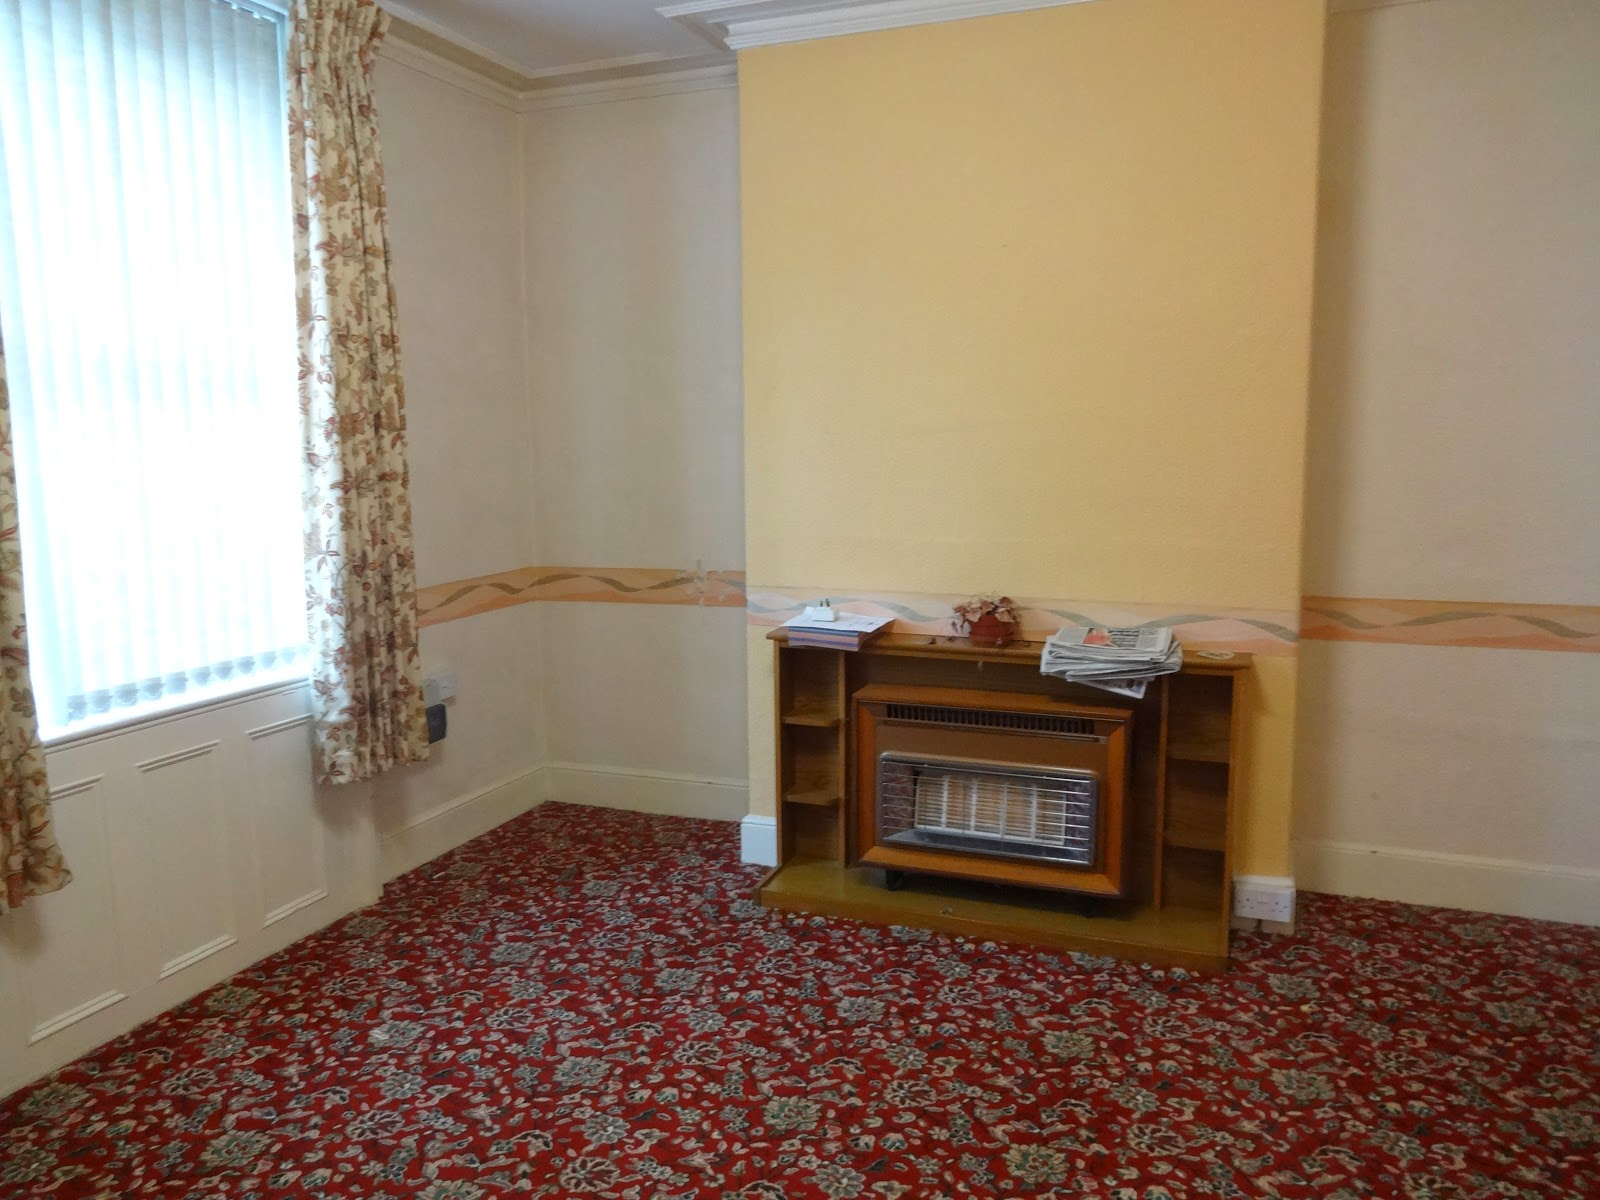 retro living room with floral carpet and old gas fire